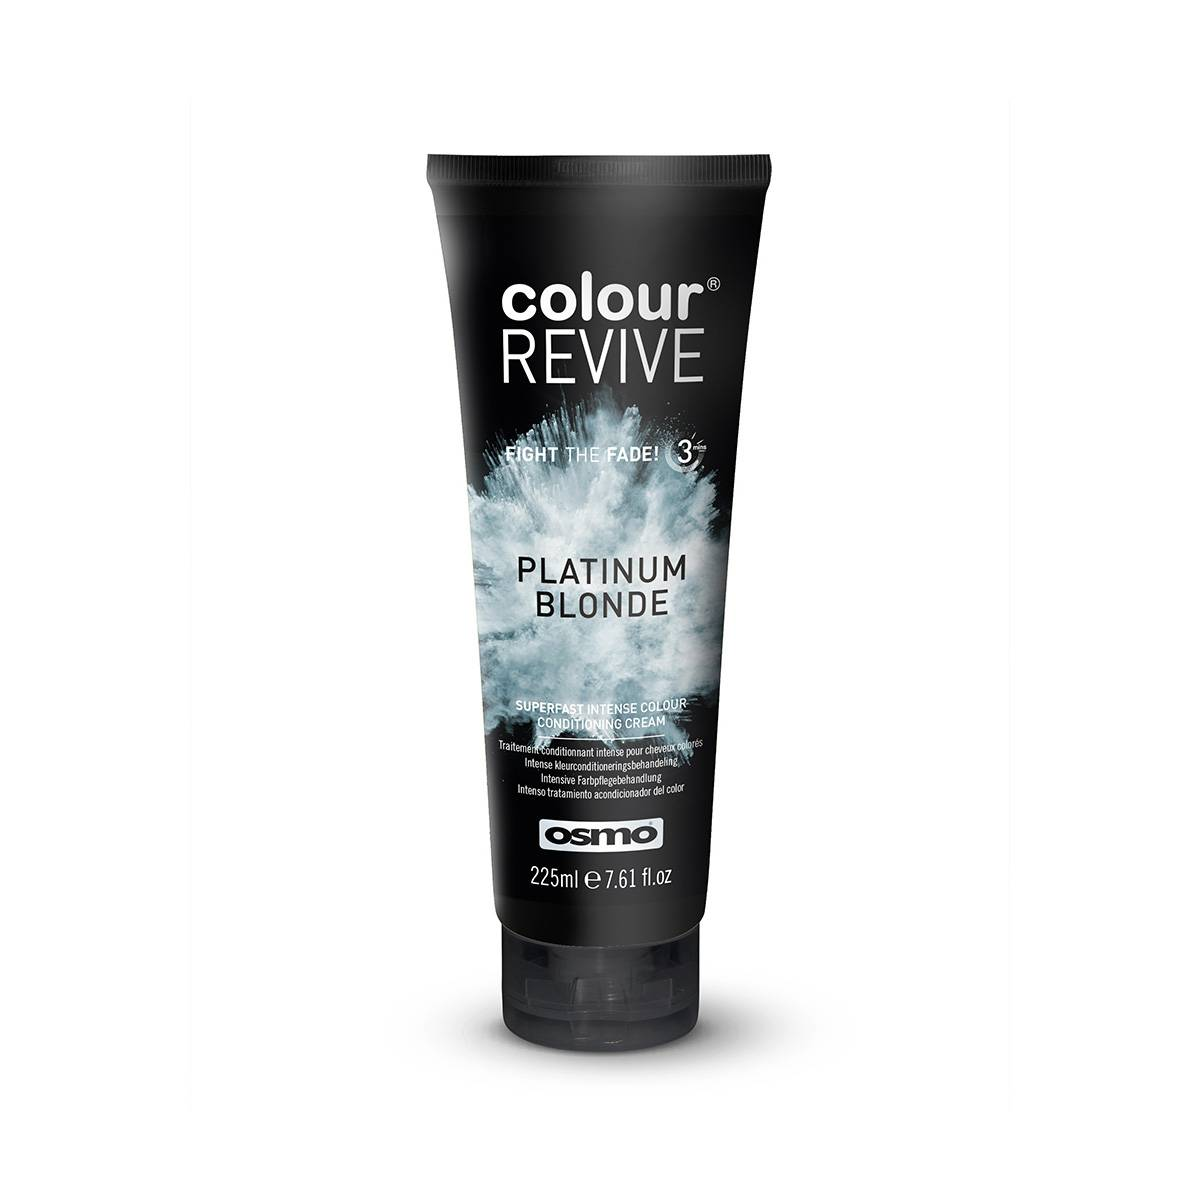 Colour Revive Mask 225ml Platinum Blonde